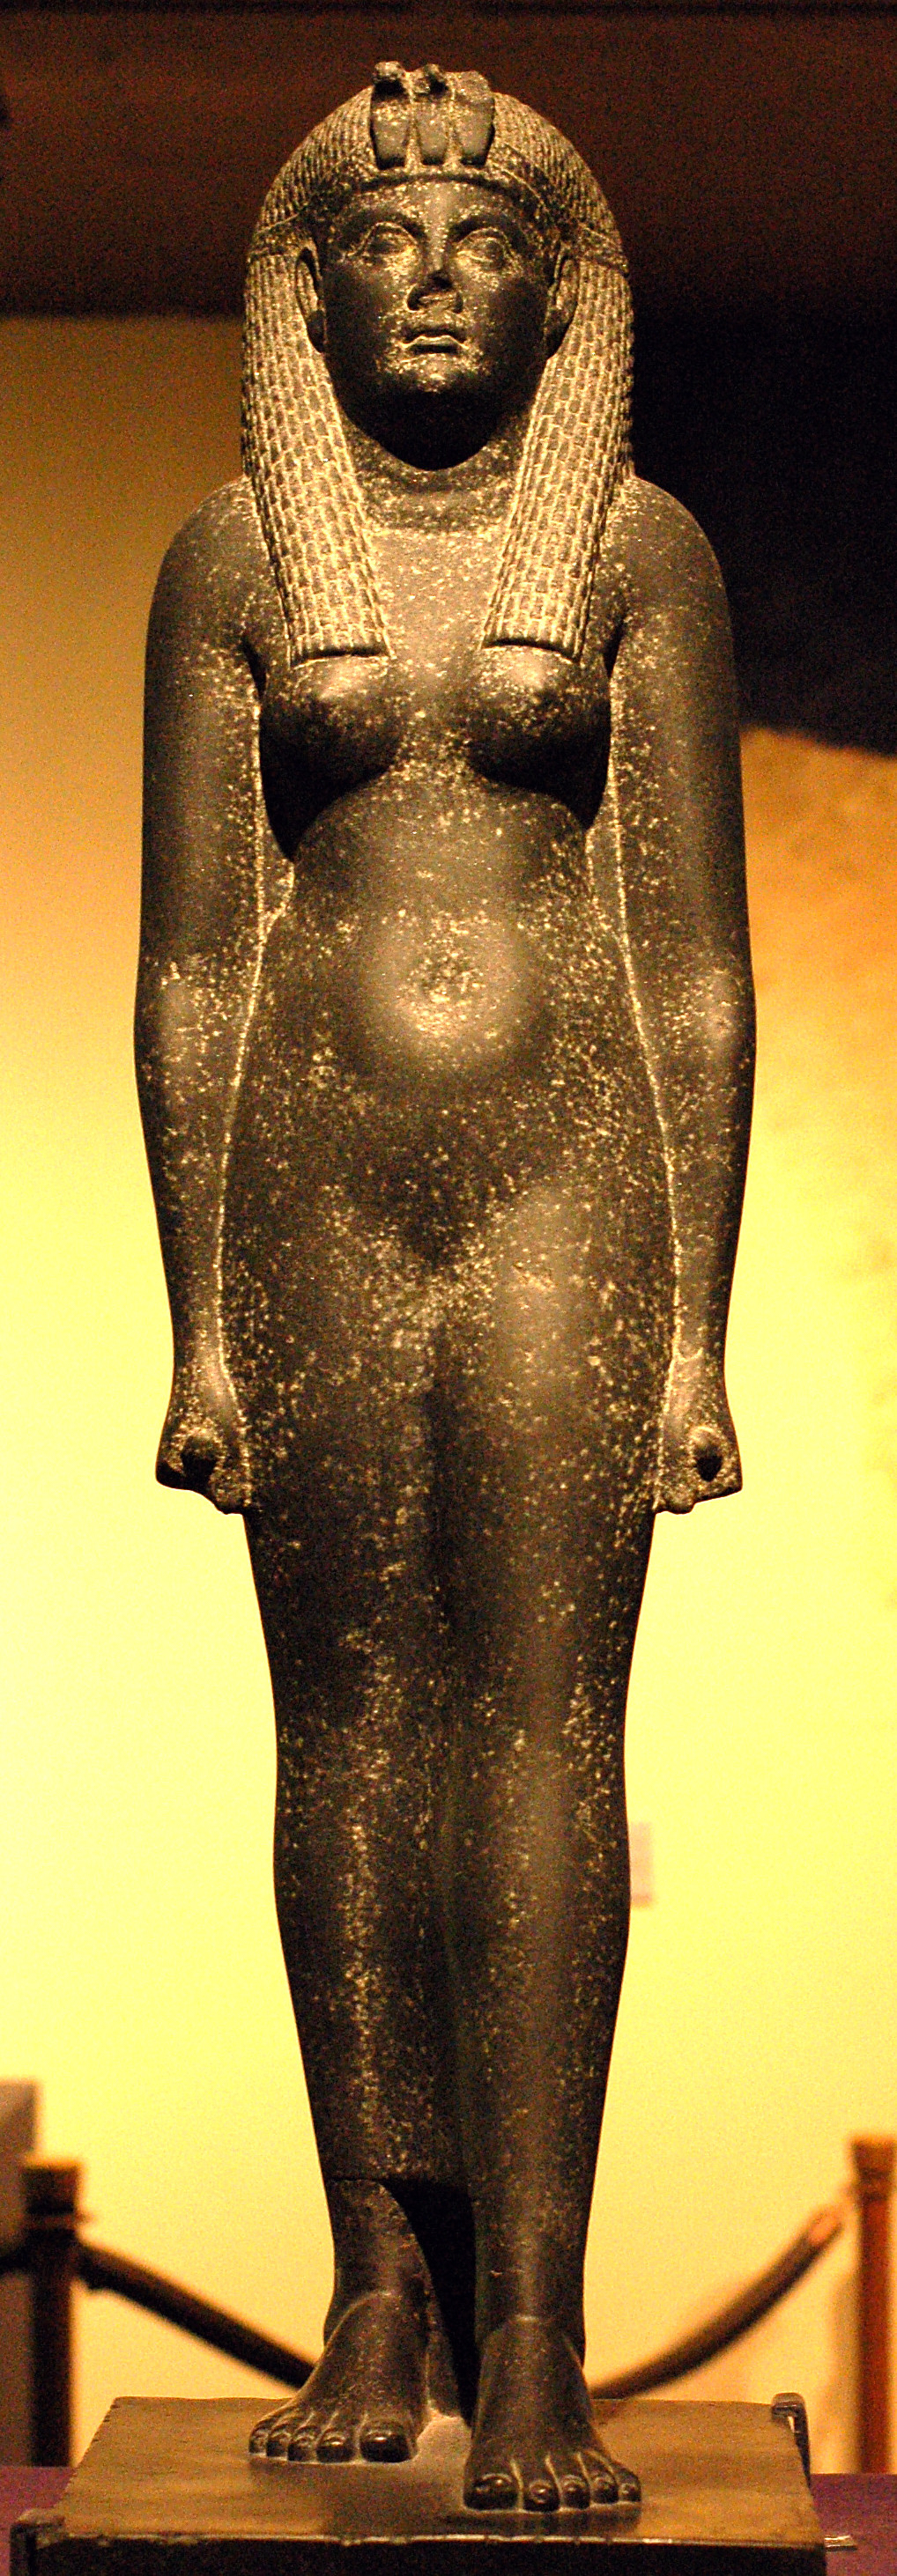 Cleopatra_statue_at_Rosicrucian_Egyptian_Museum